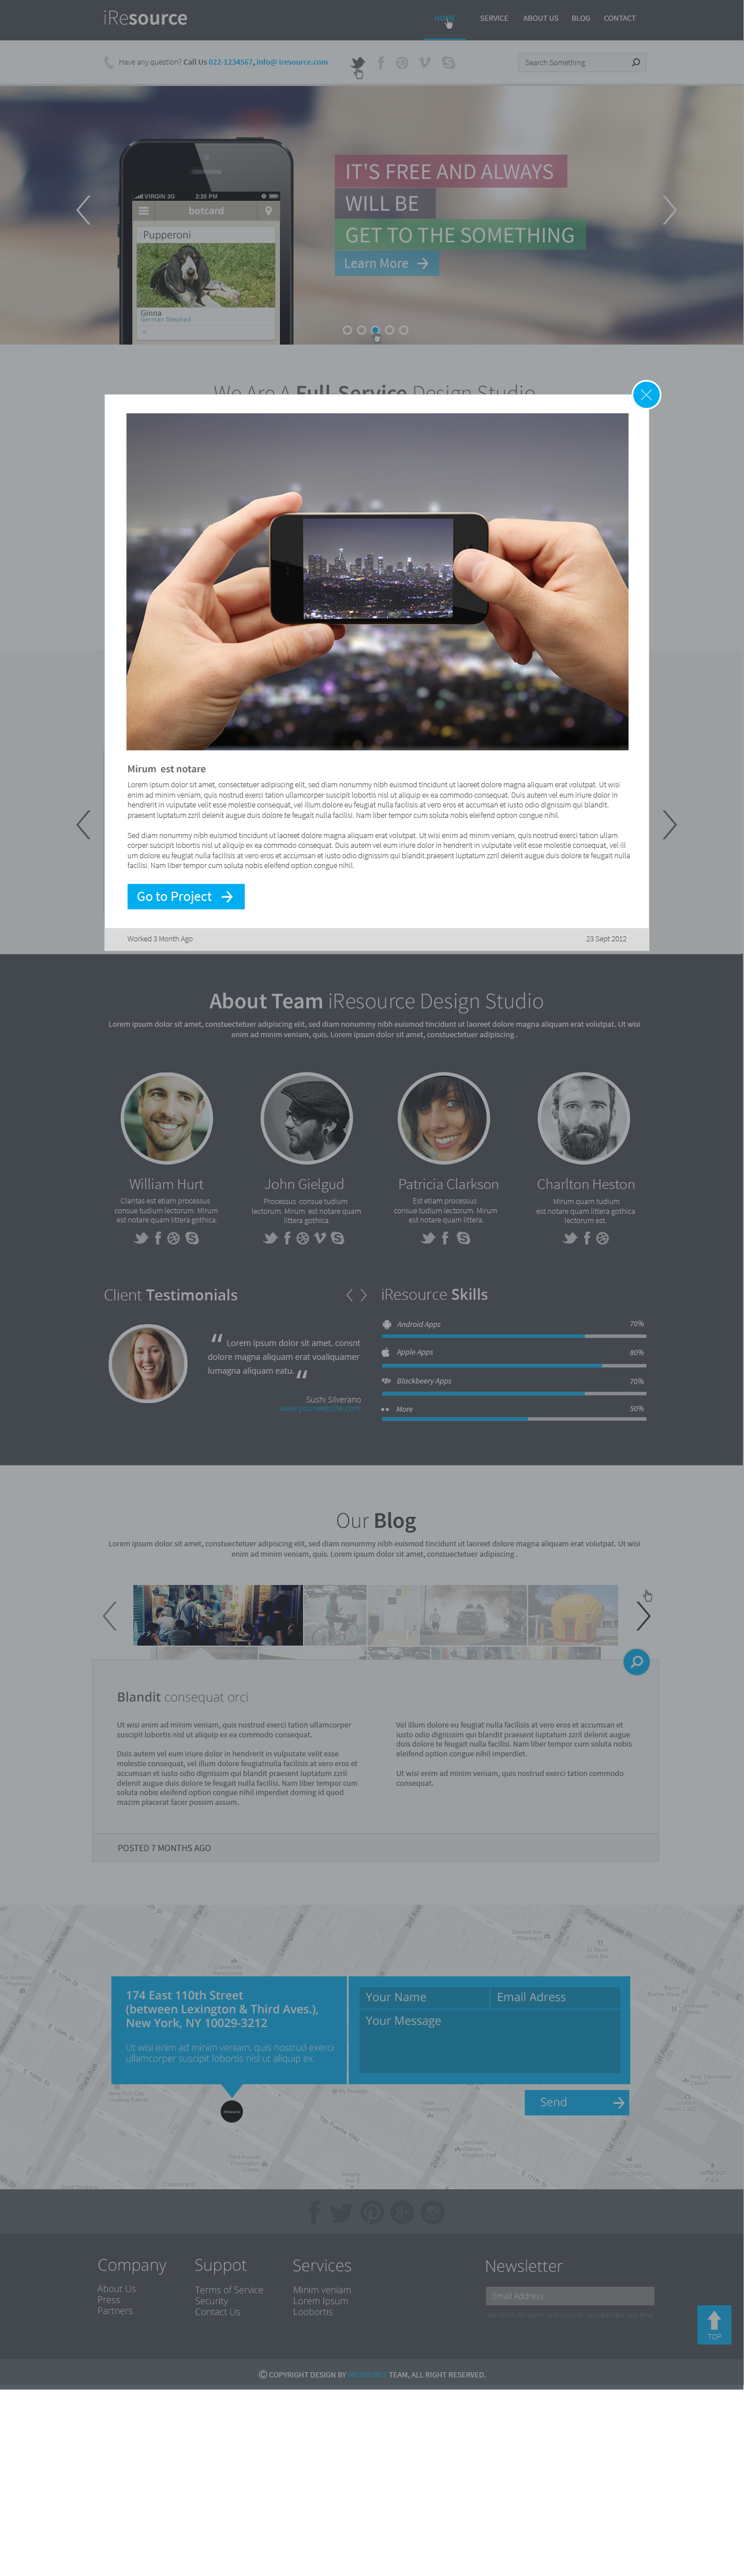 iResources - Creative One Page portfolio PSD Theme